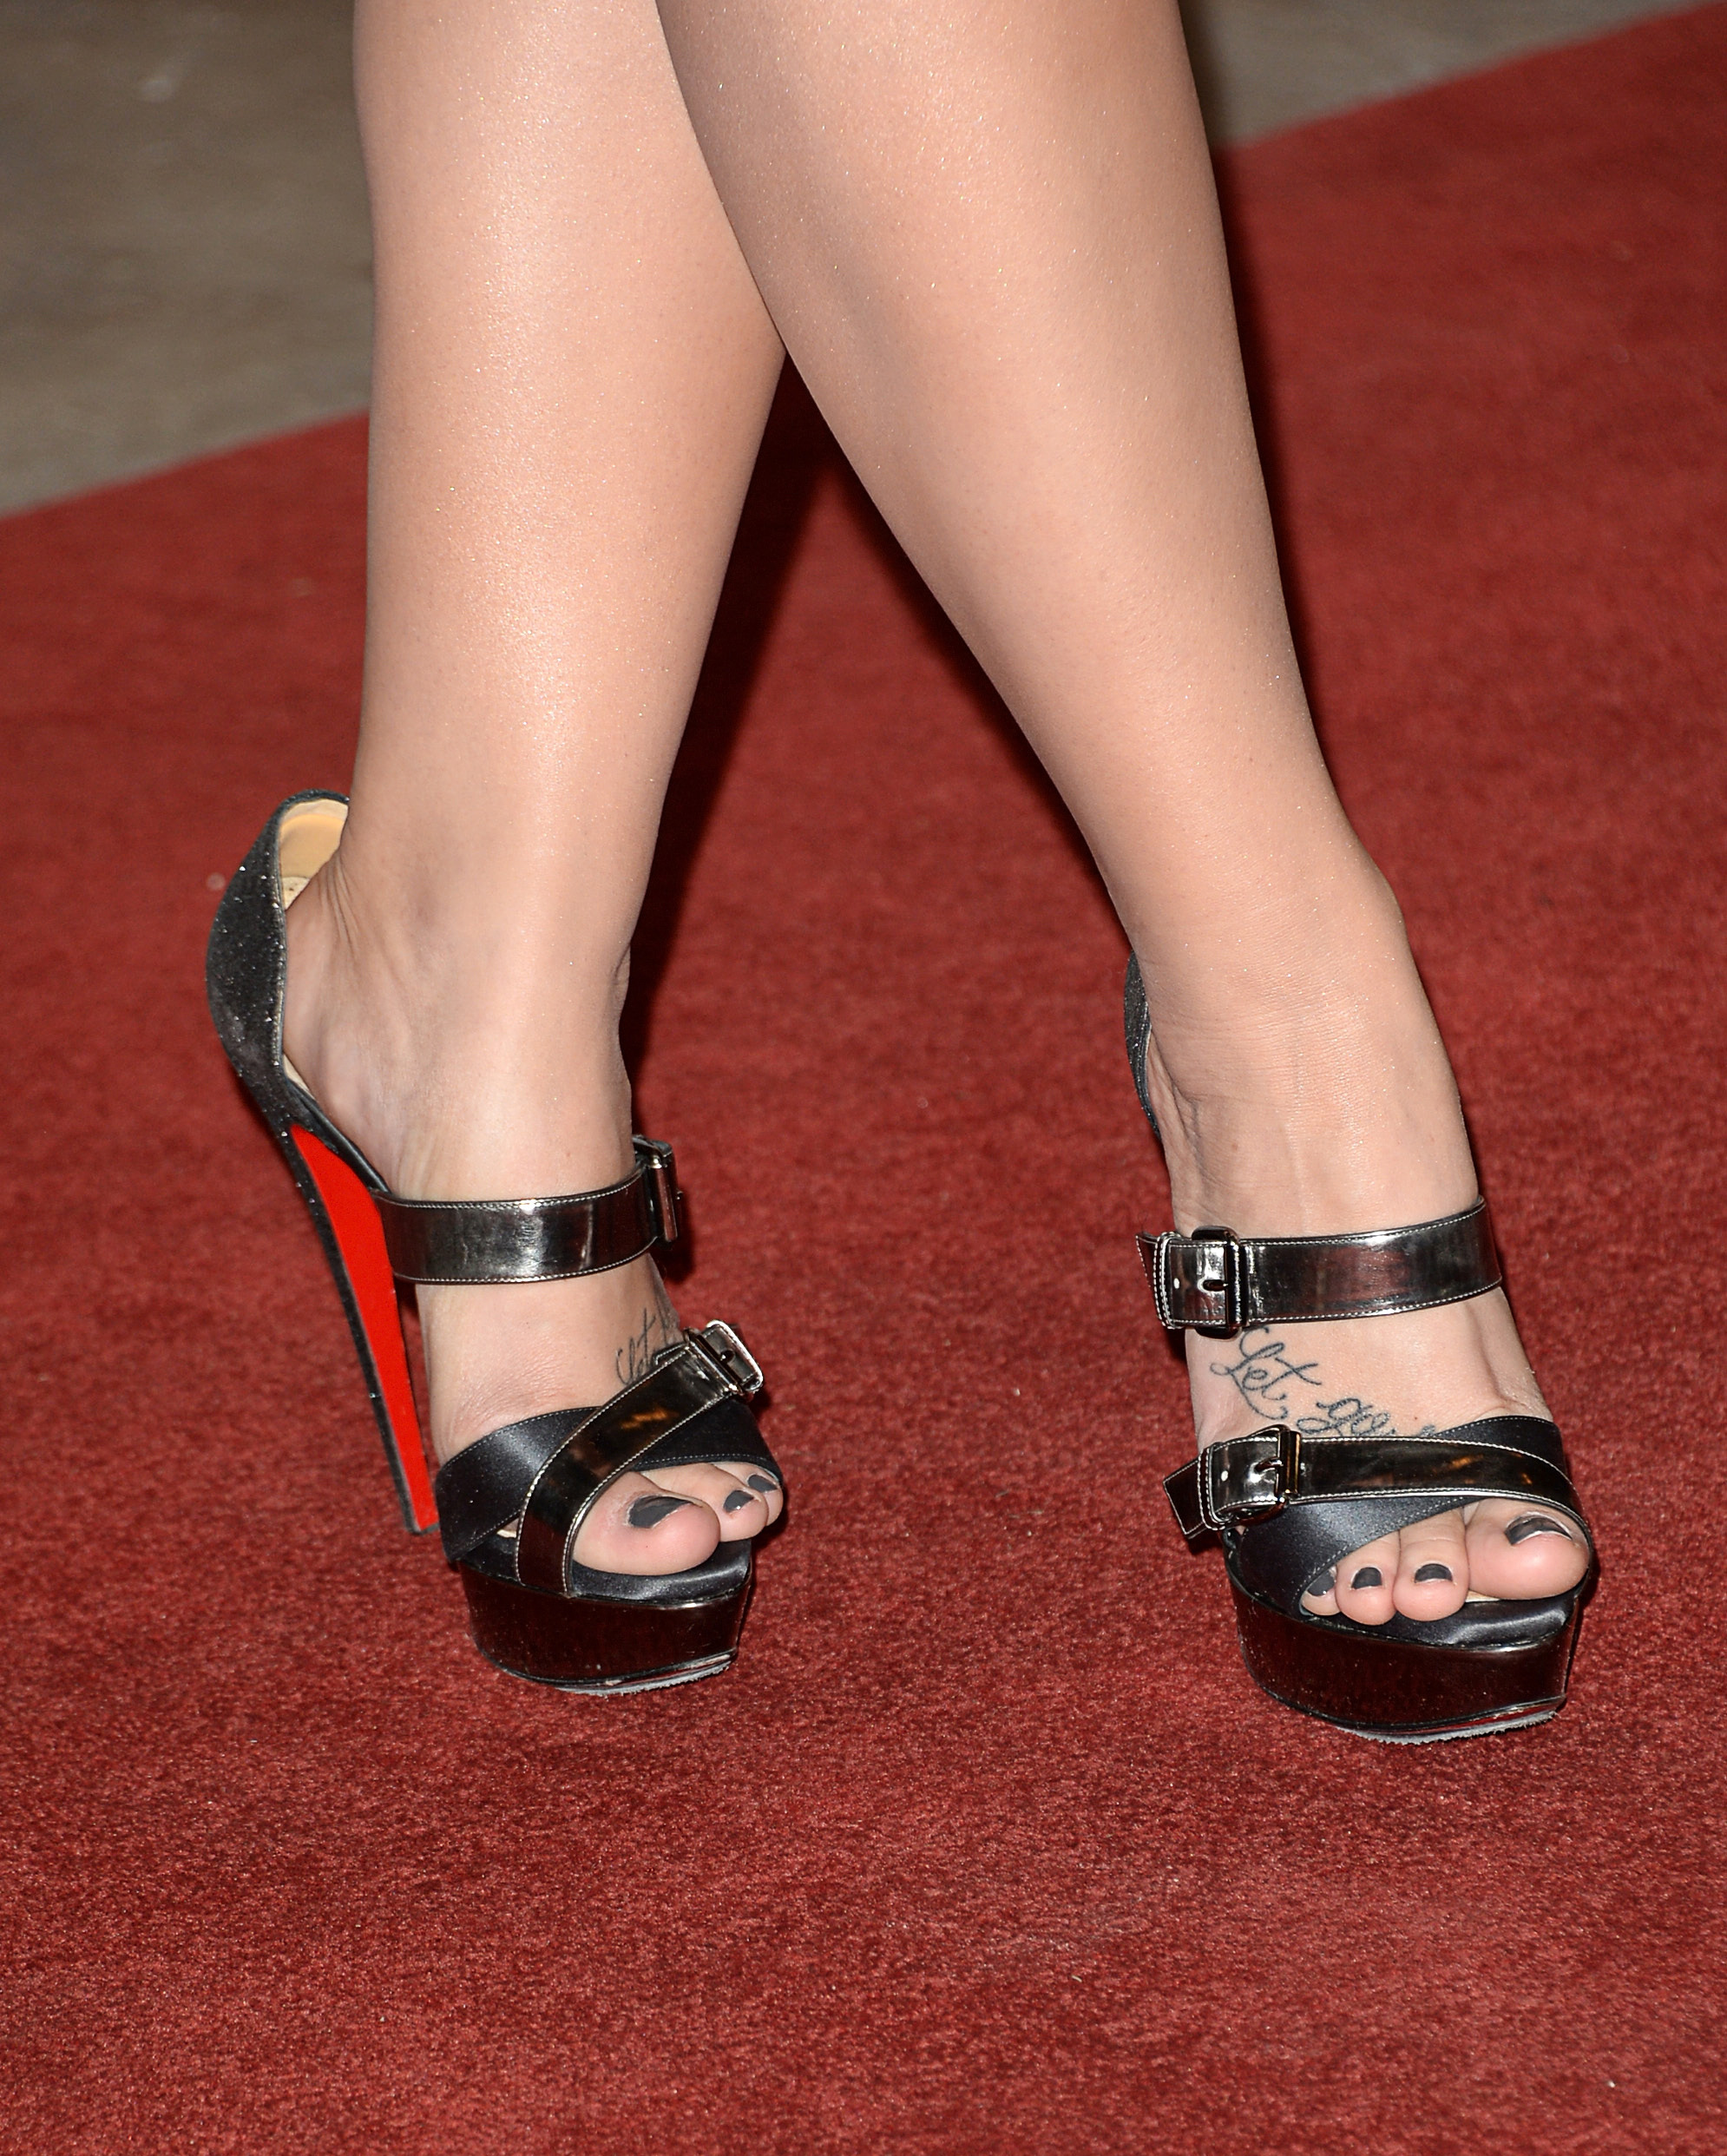 Demi lovato high heels 7